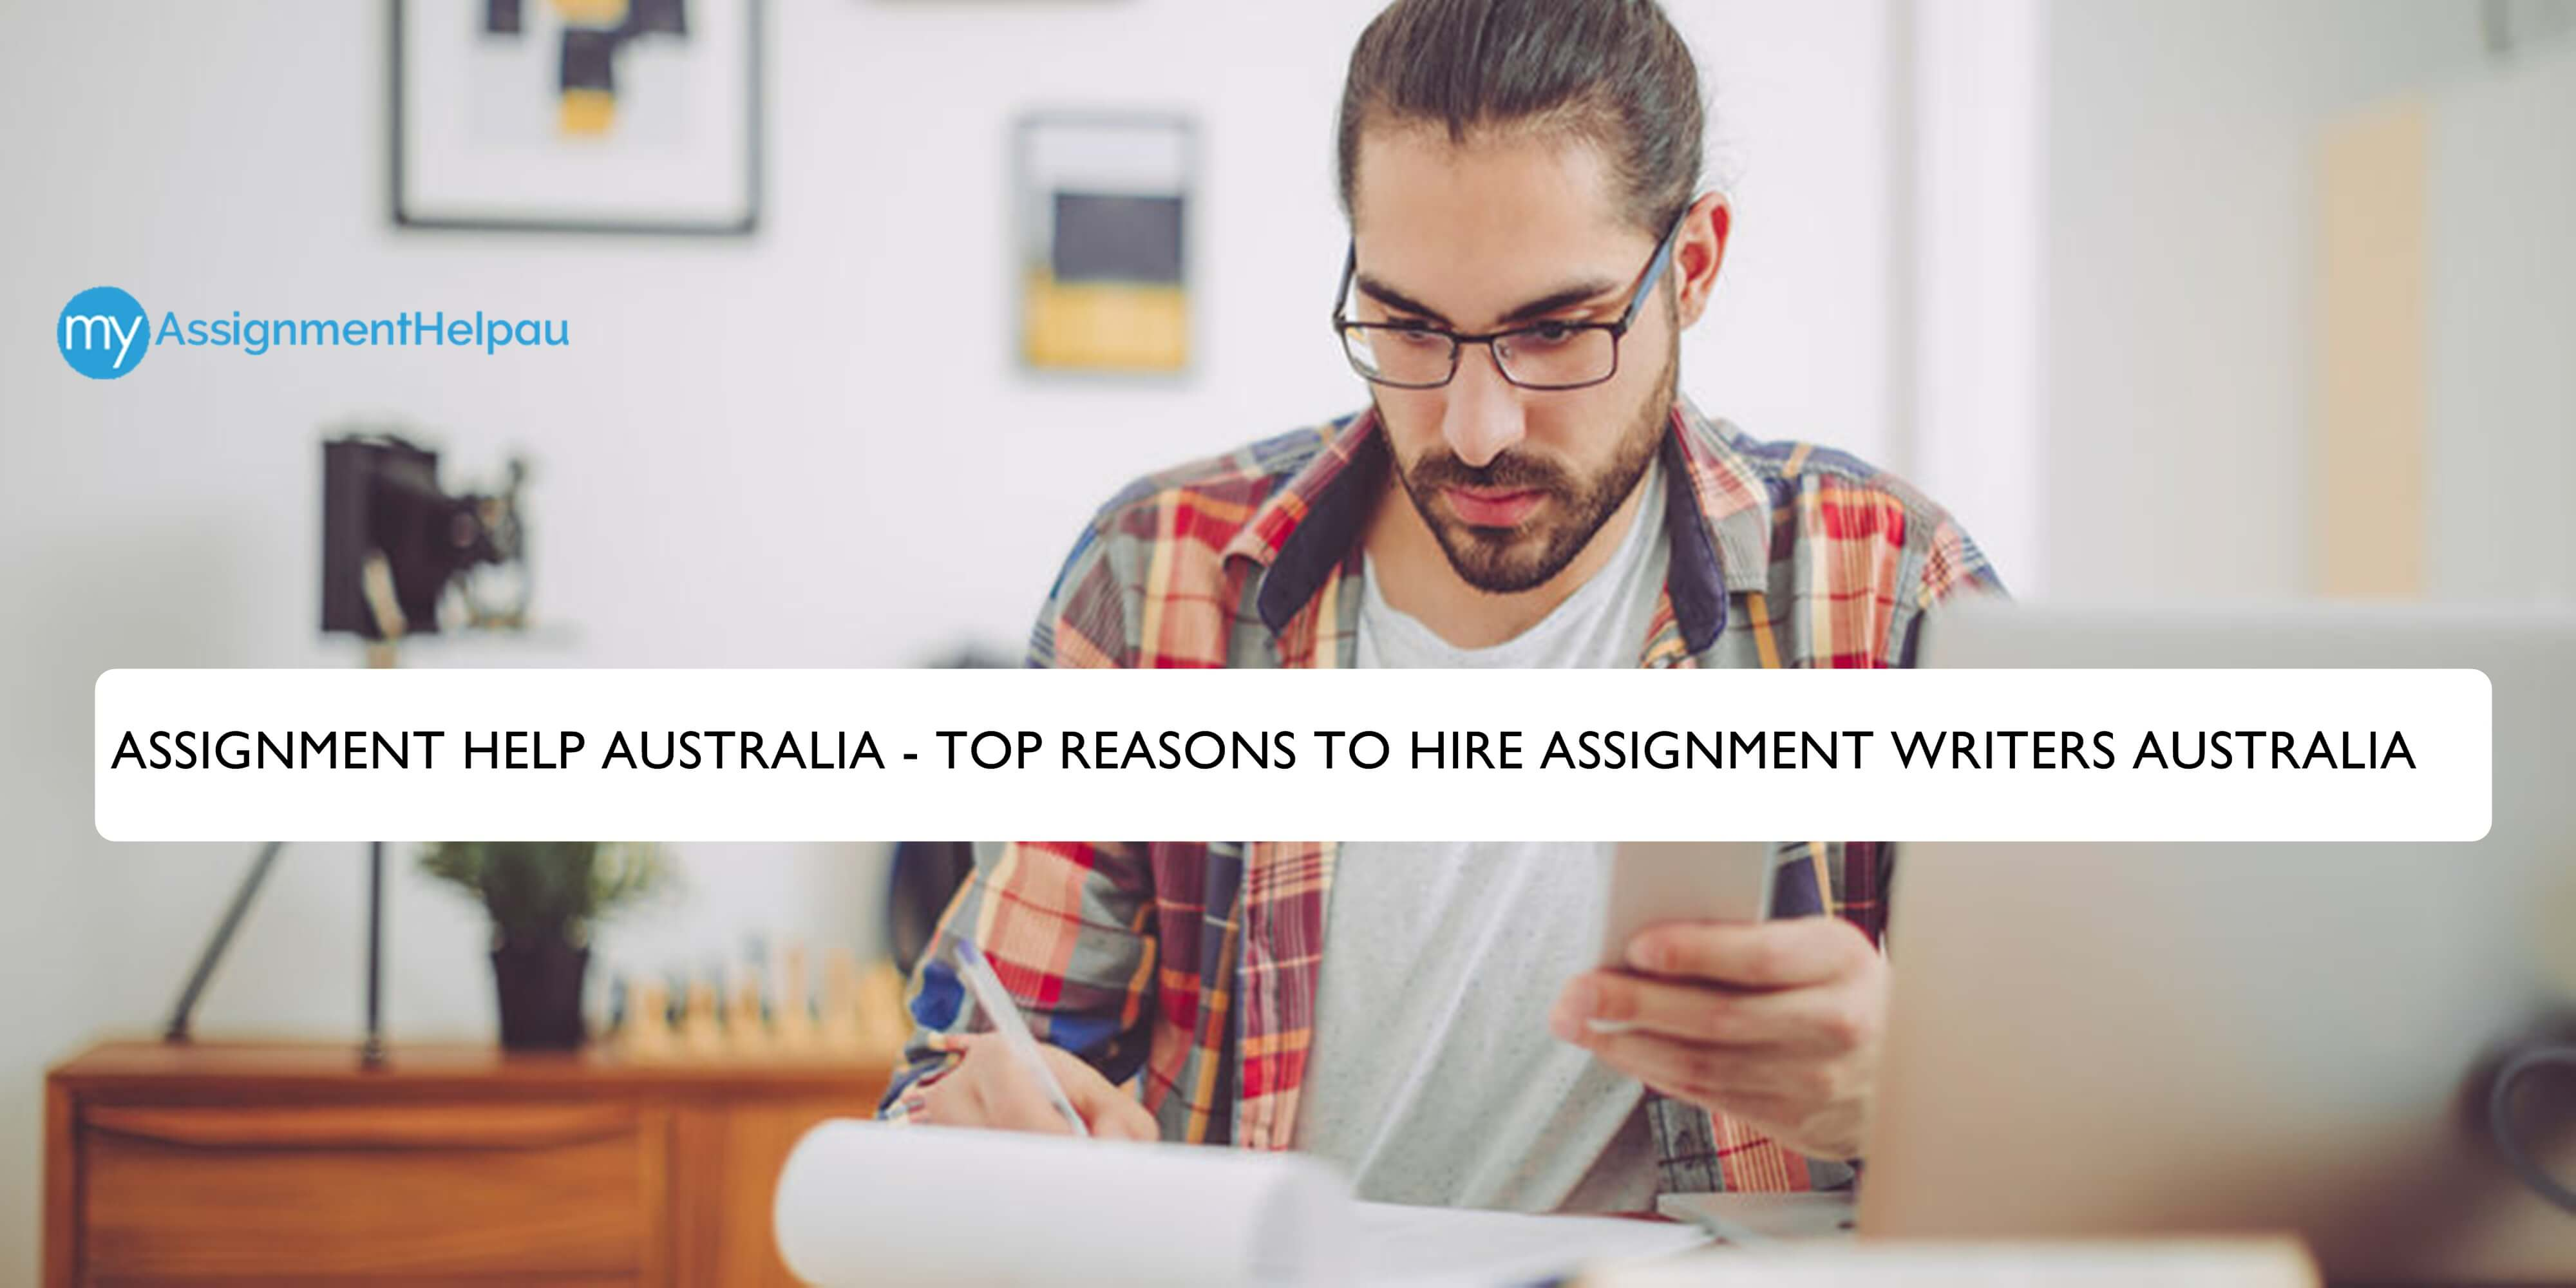 Assignment Help Services - Top Reasons to Hire Assignment Writers Australia